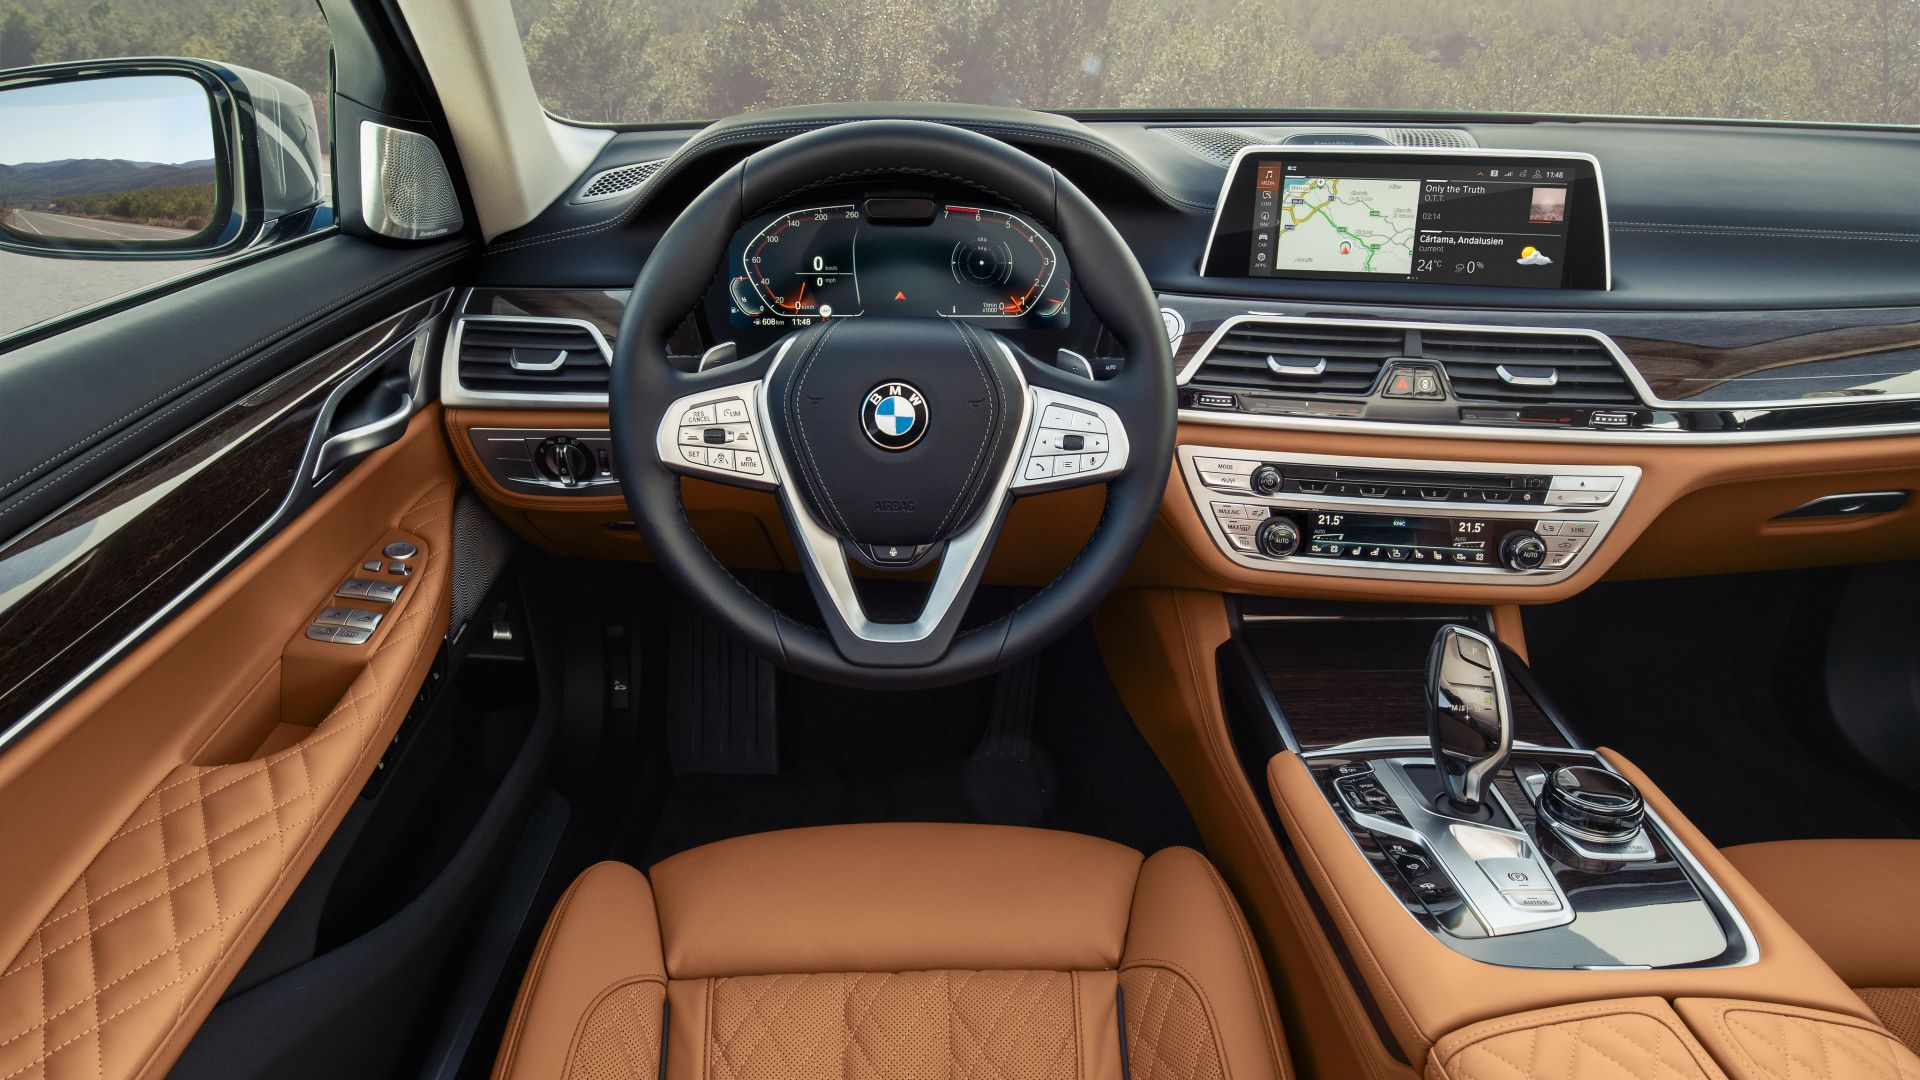 BMW 750Li xDrive, 2019 Cars, 4K (horizontal)